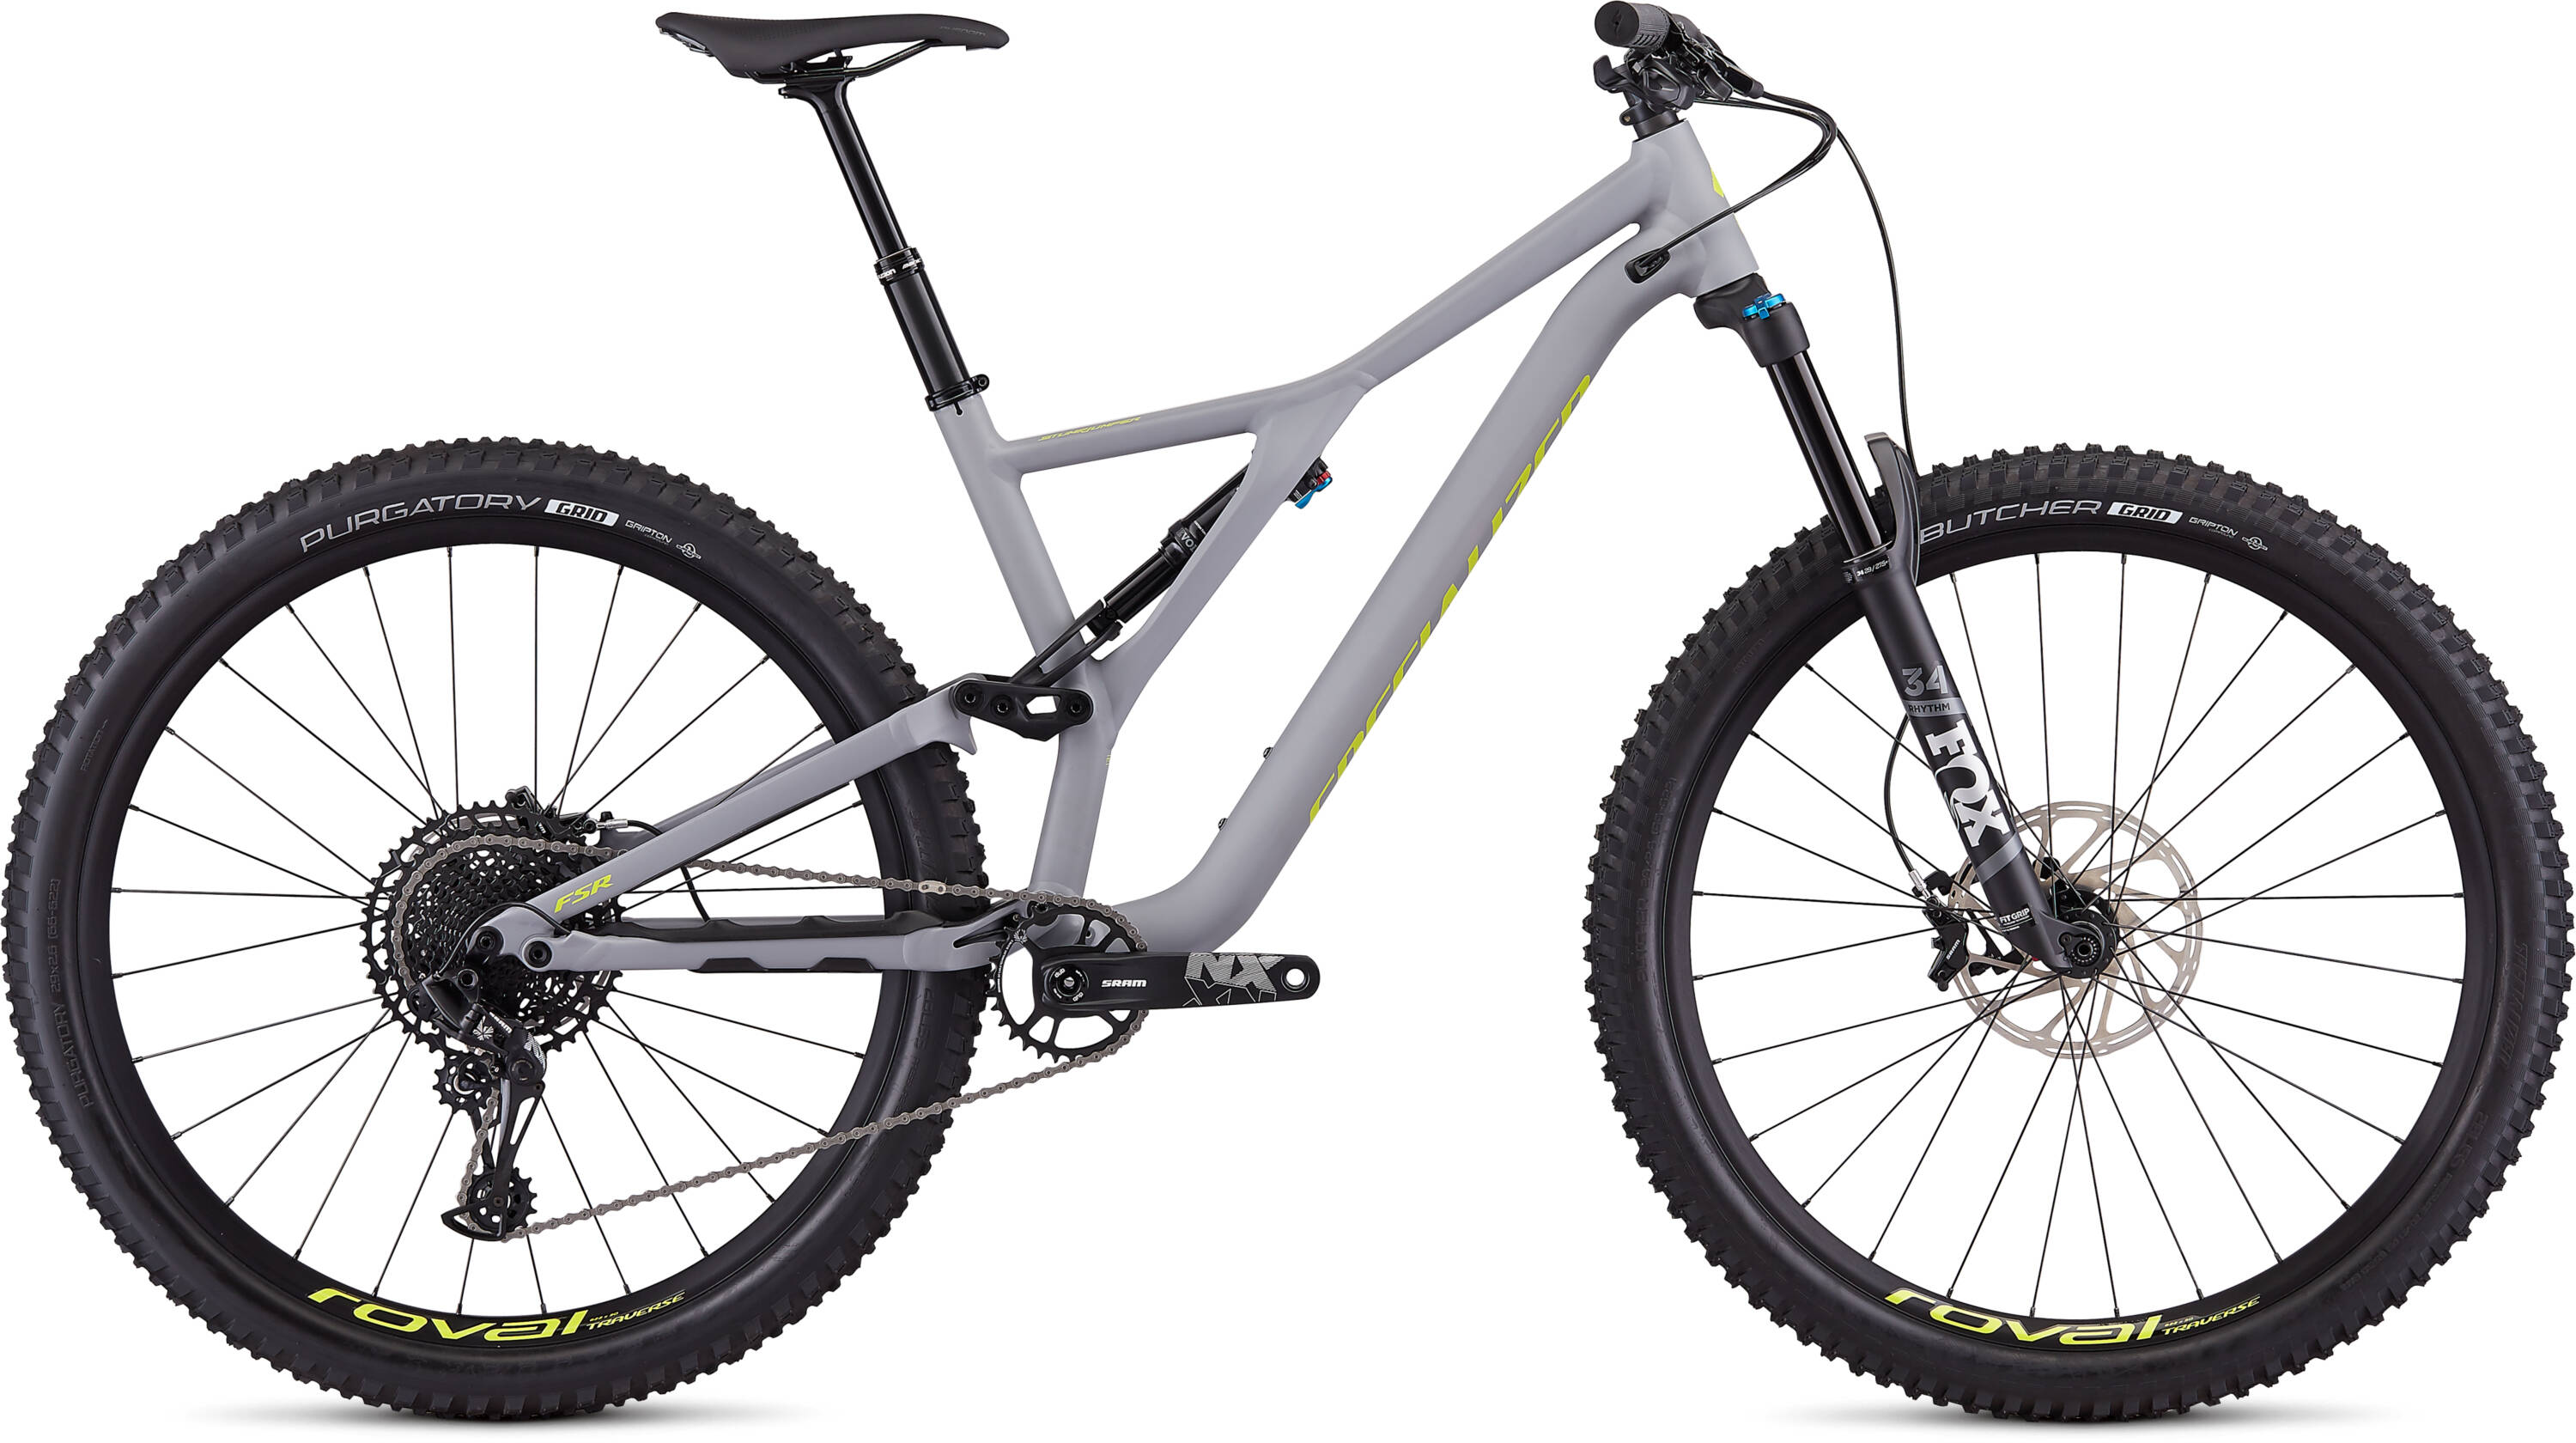 Specialized Stumpjumper Comp Alloy 29 Mountain Bike